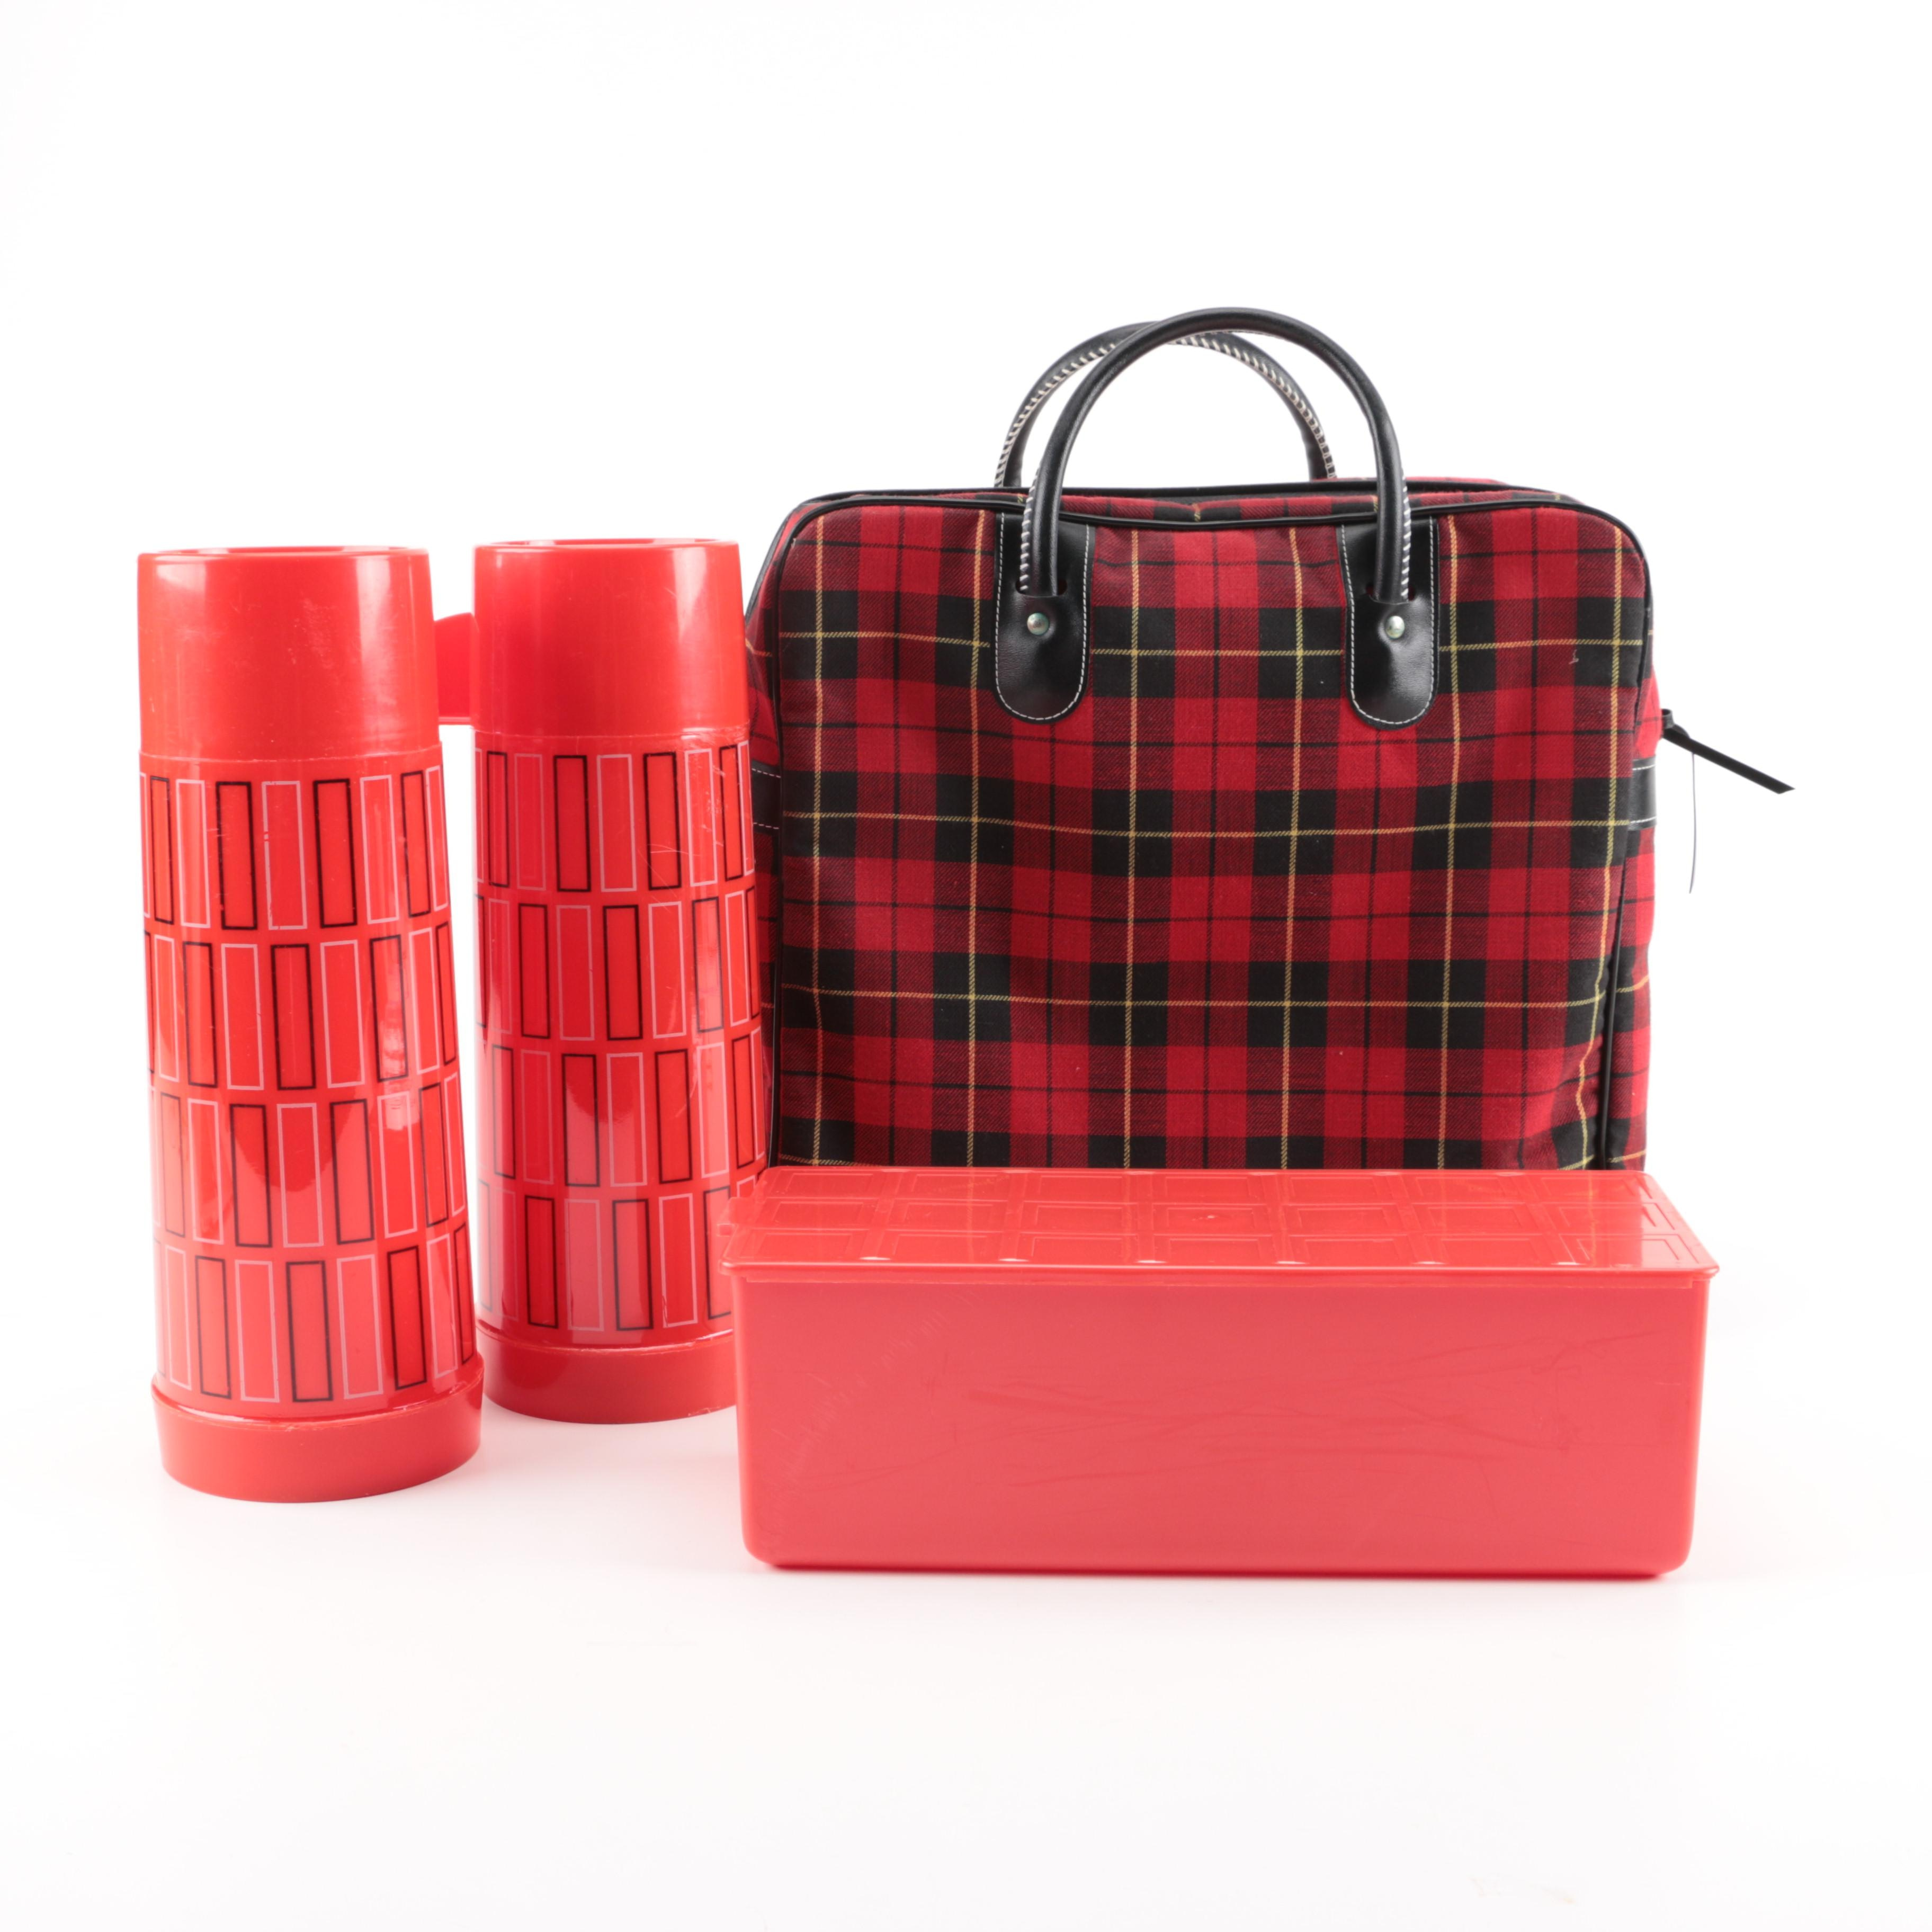 Black and Red Plaid Lunch Bag and Accessories